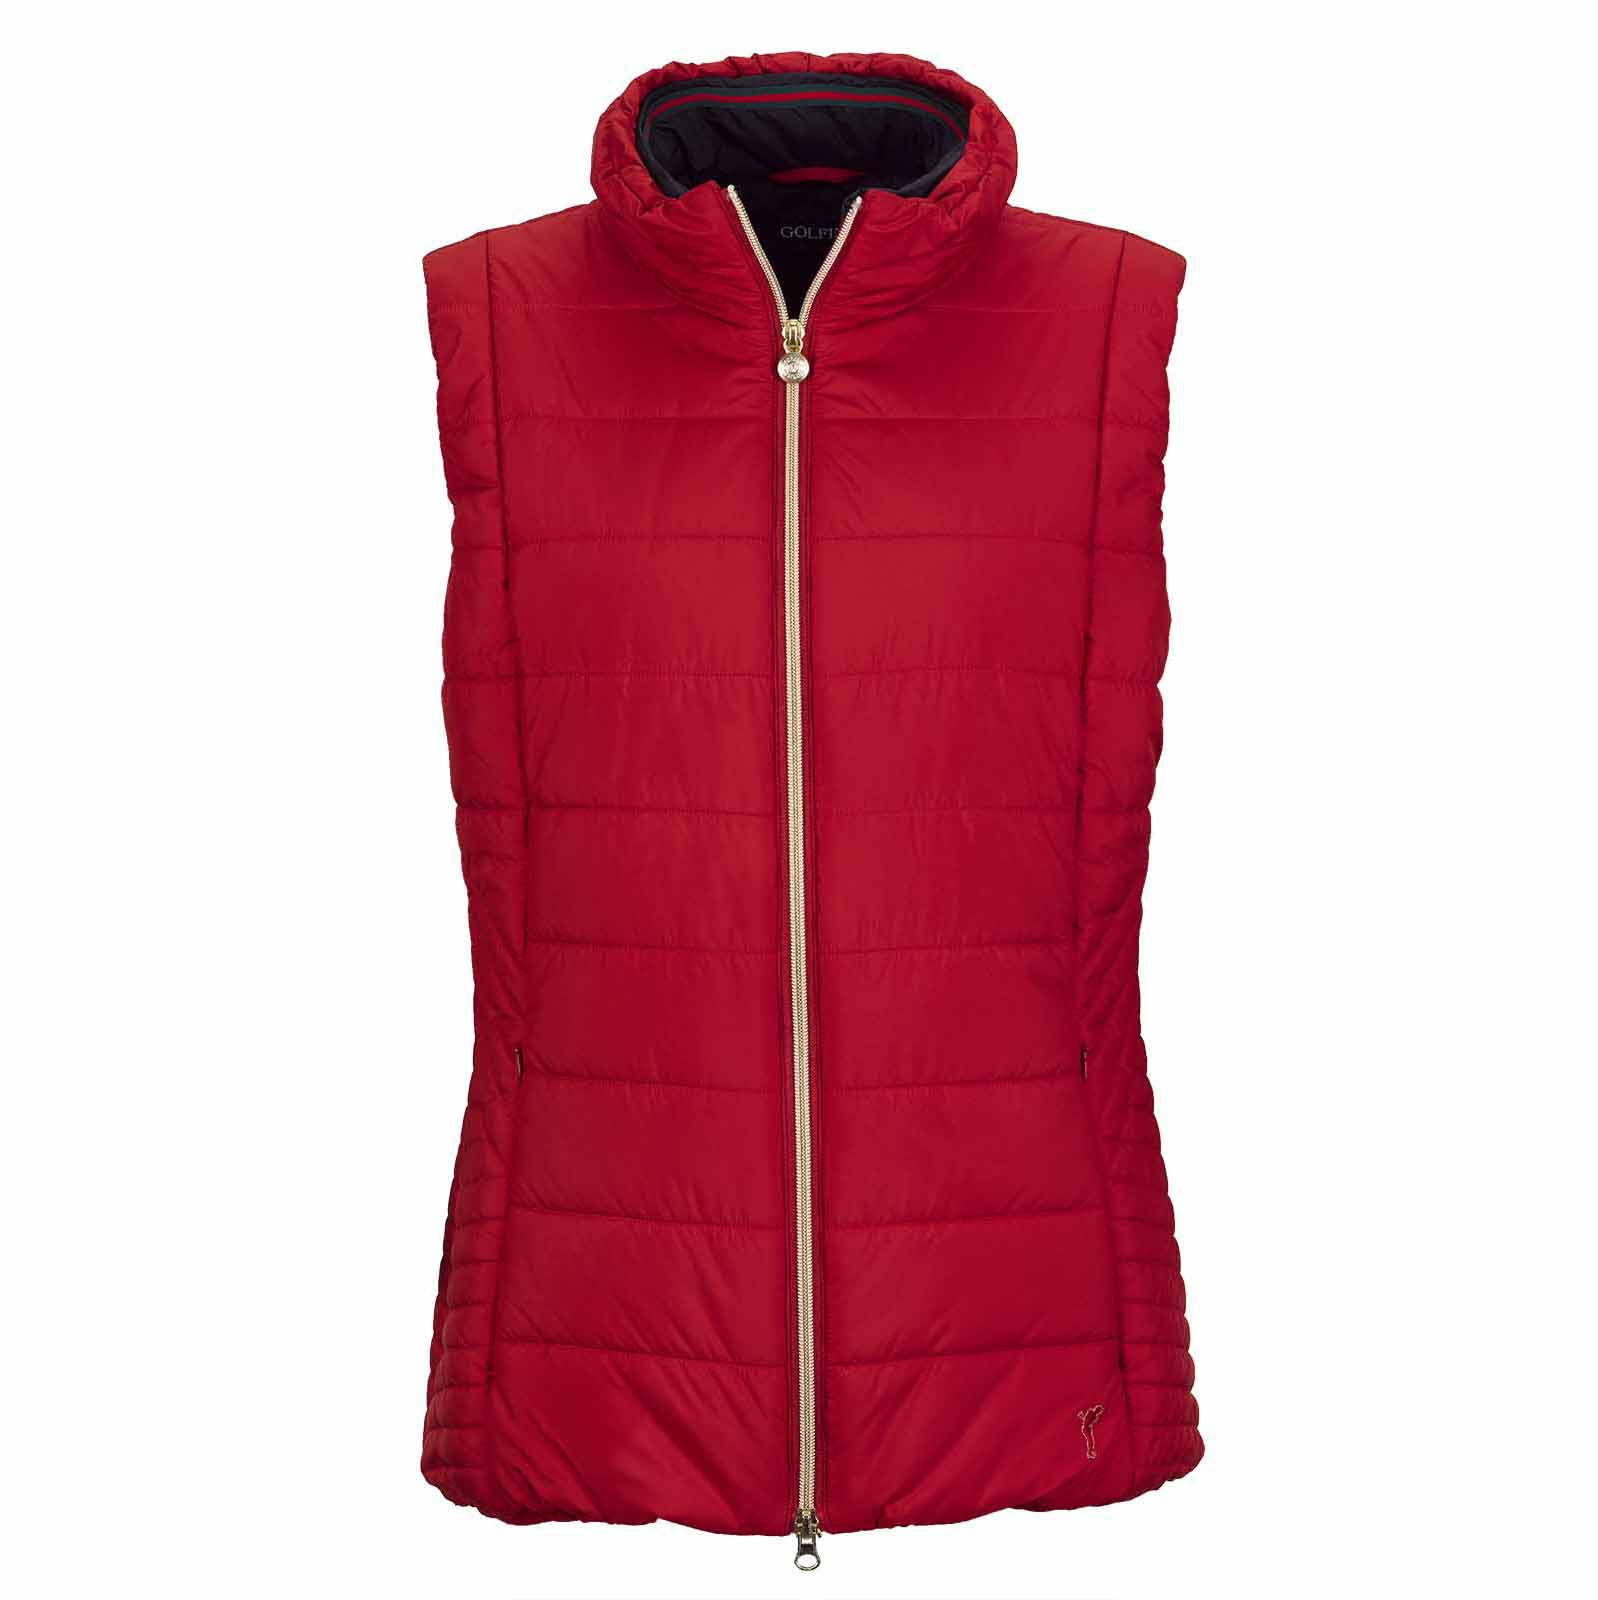 Ladies' premium wind protection golf waistcoat with very good insulation